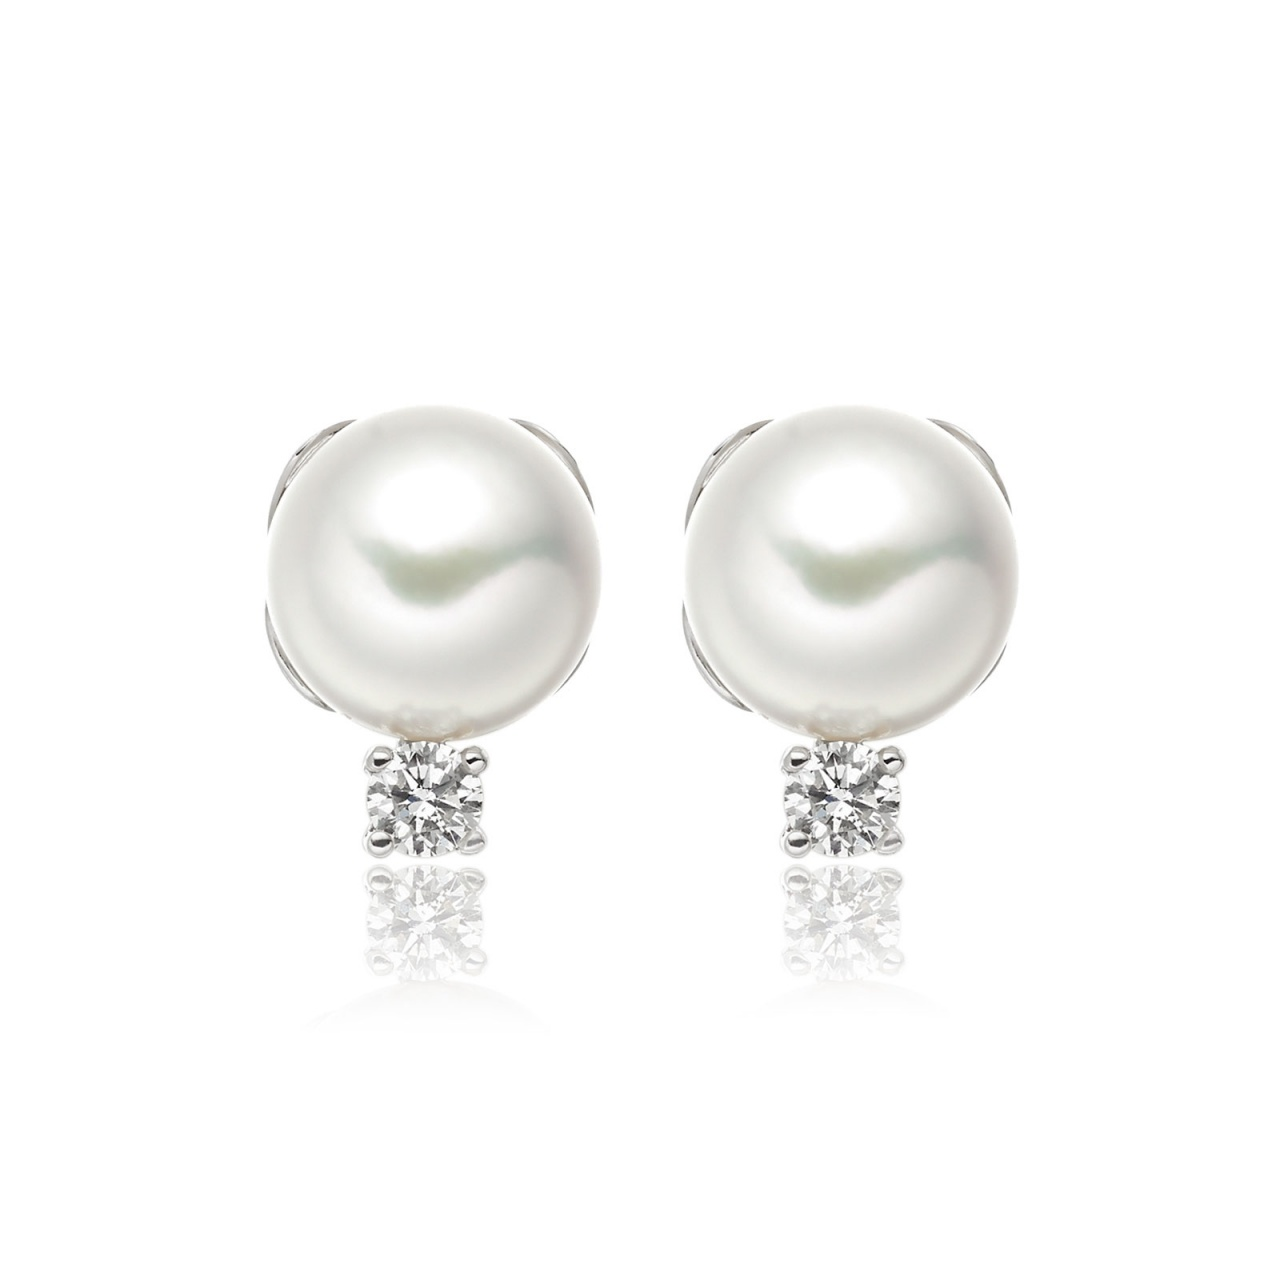 Entwined Akoya Pearl and Diamond Studs in White Gold-AEWRWG0417-1